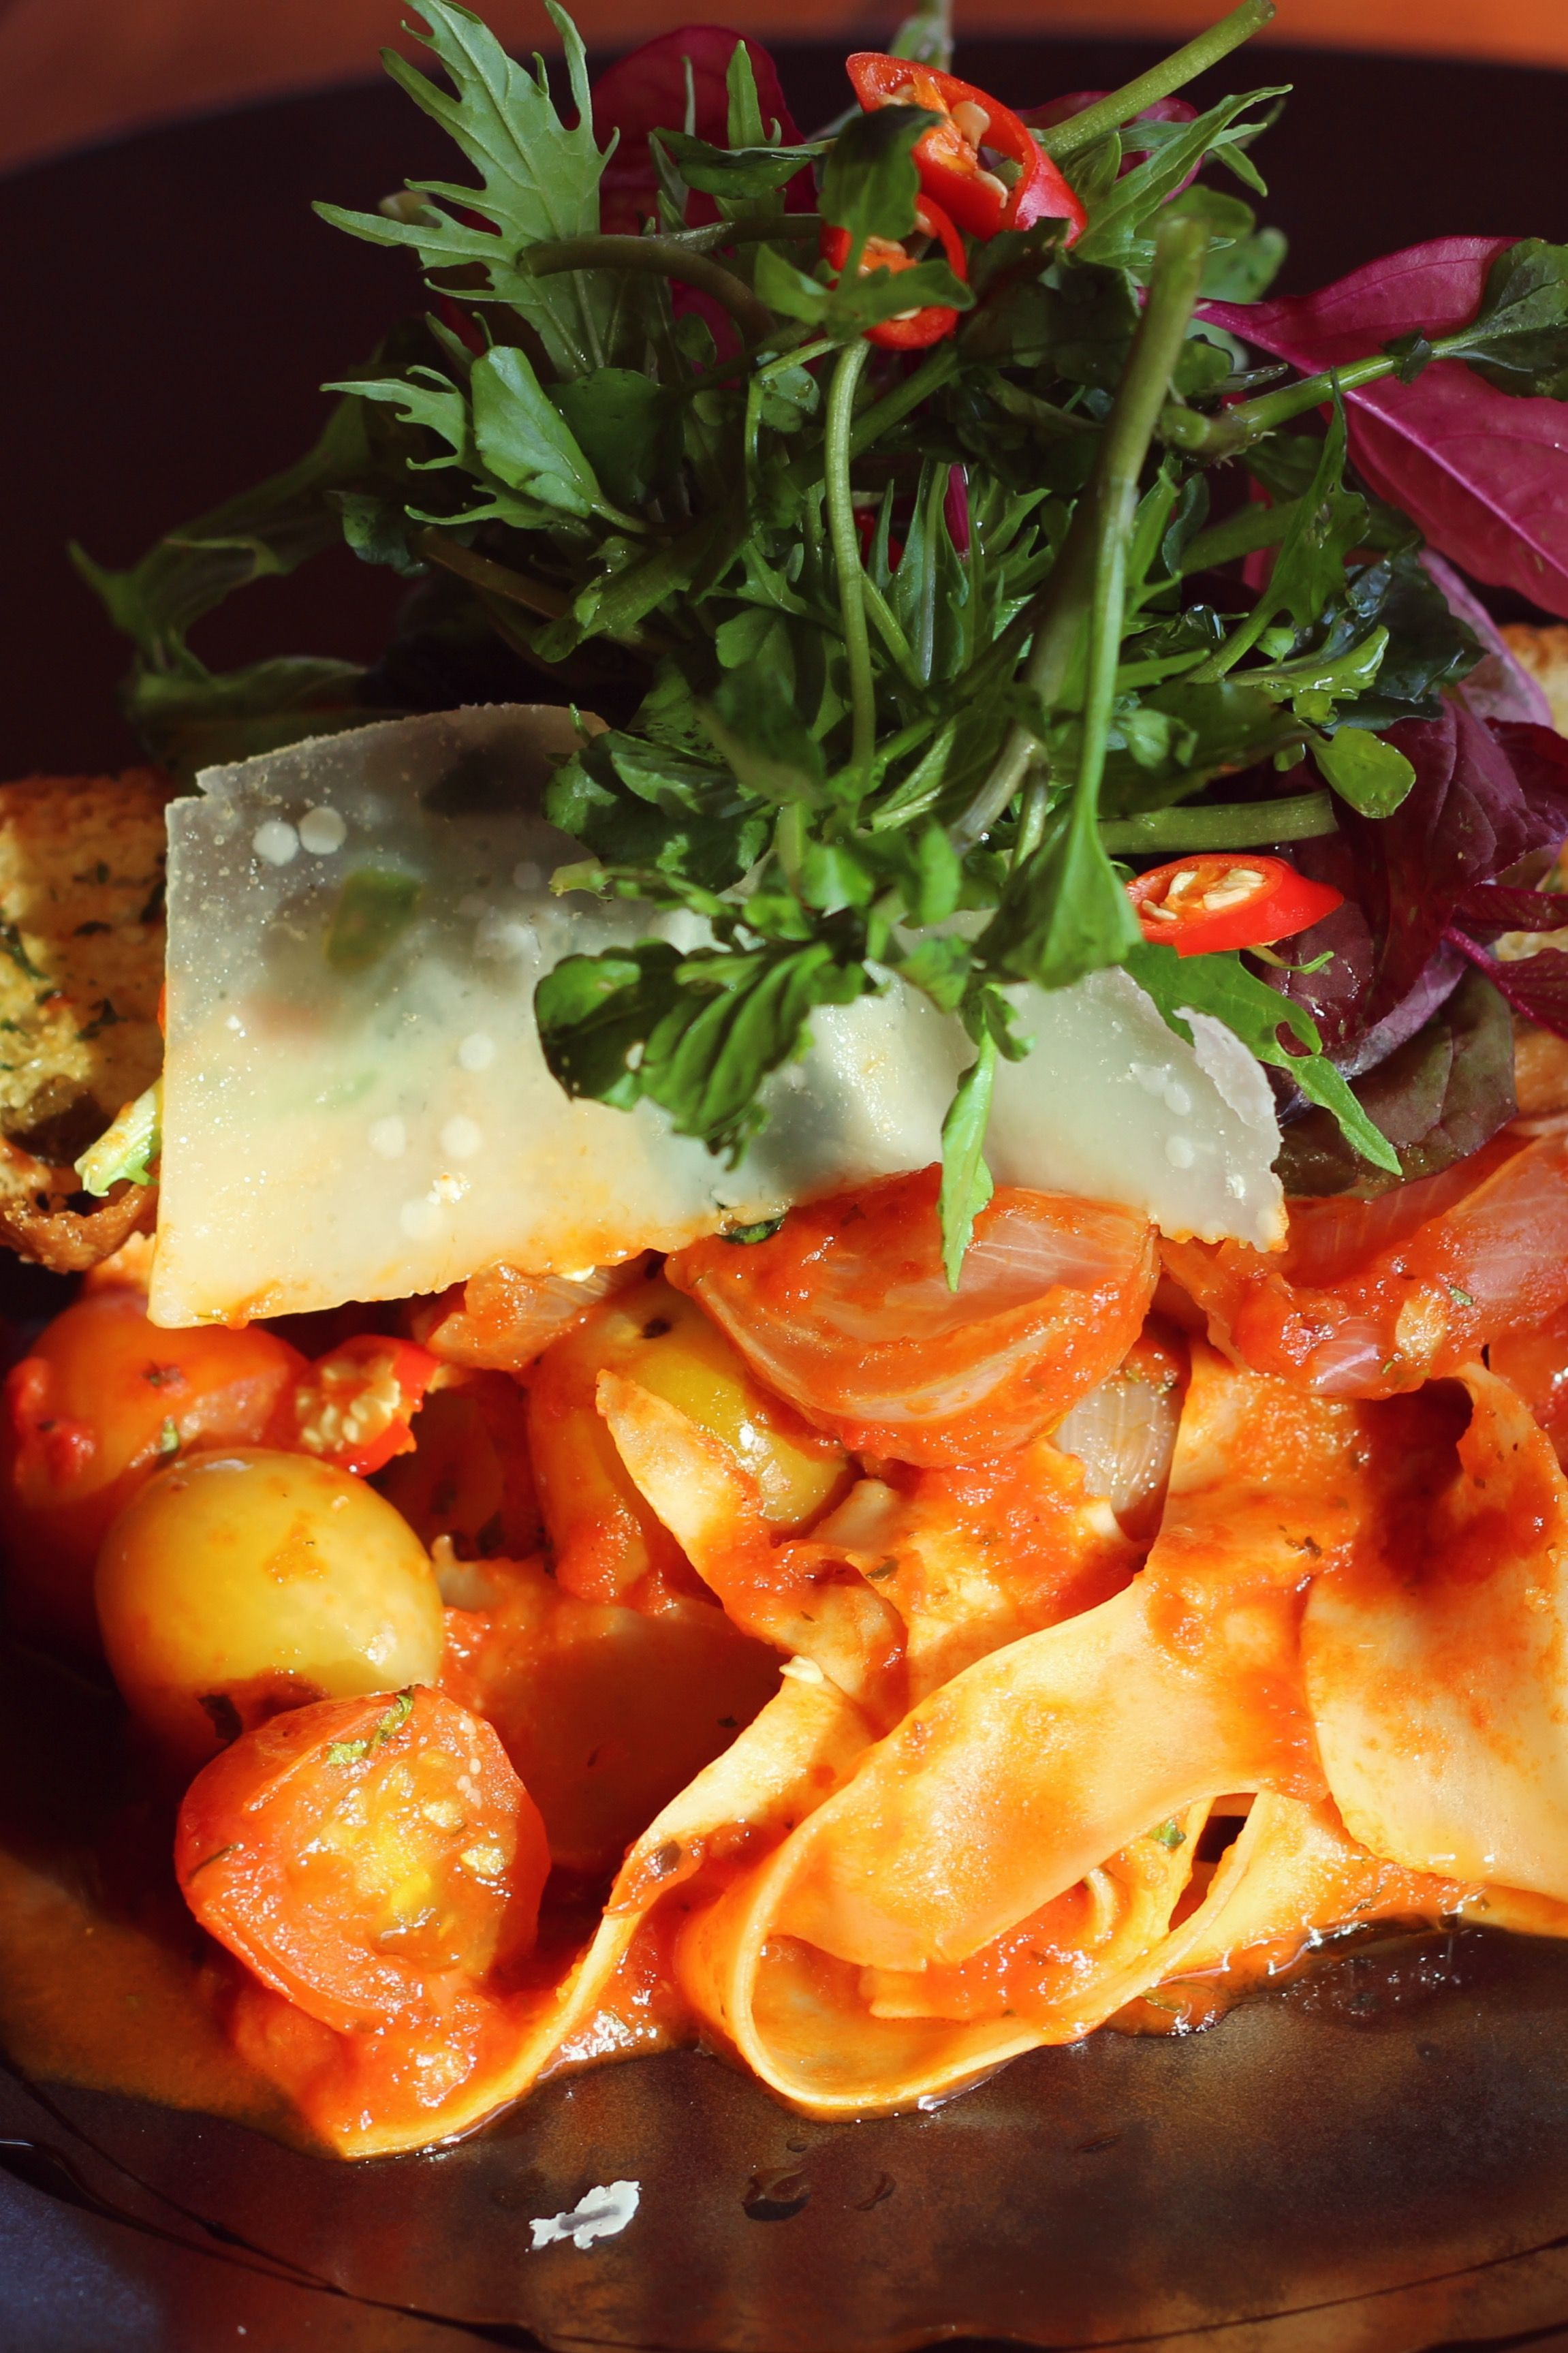 Homemade pappardelle with pomodoro and fresh chili